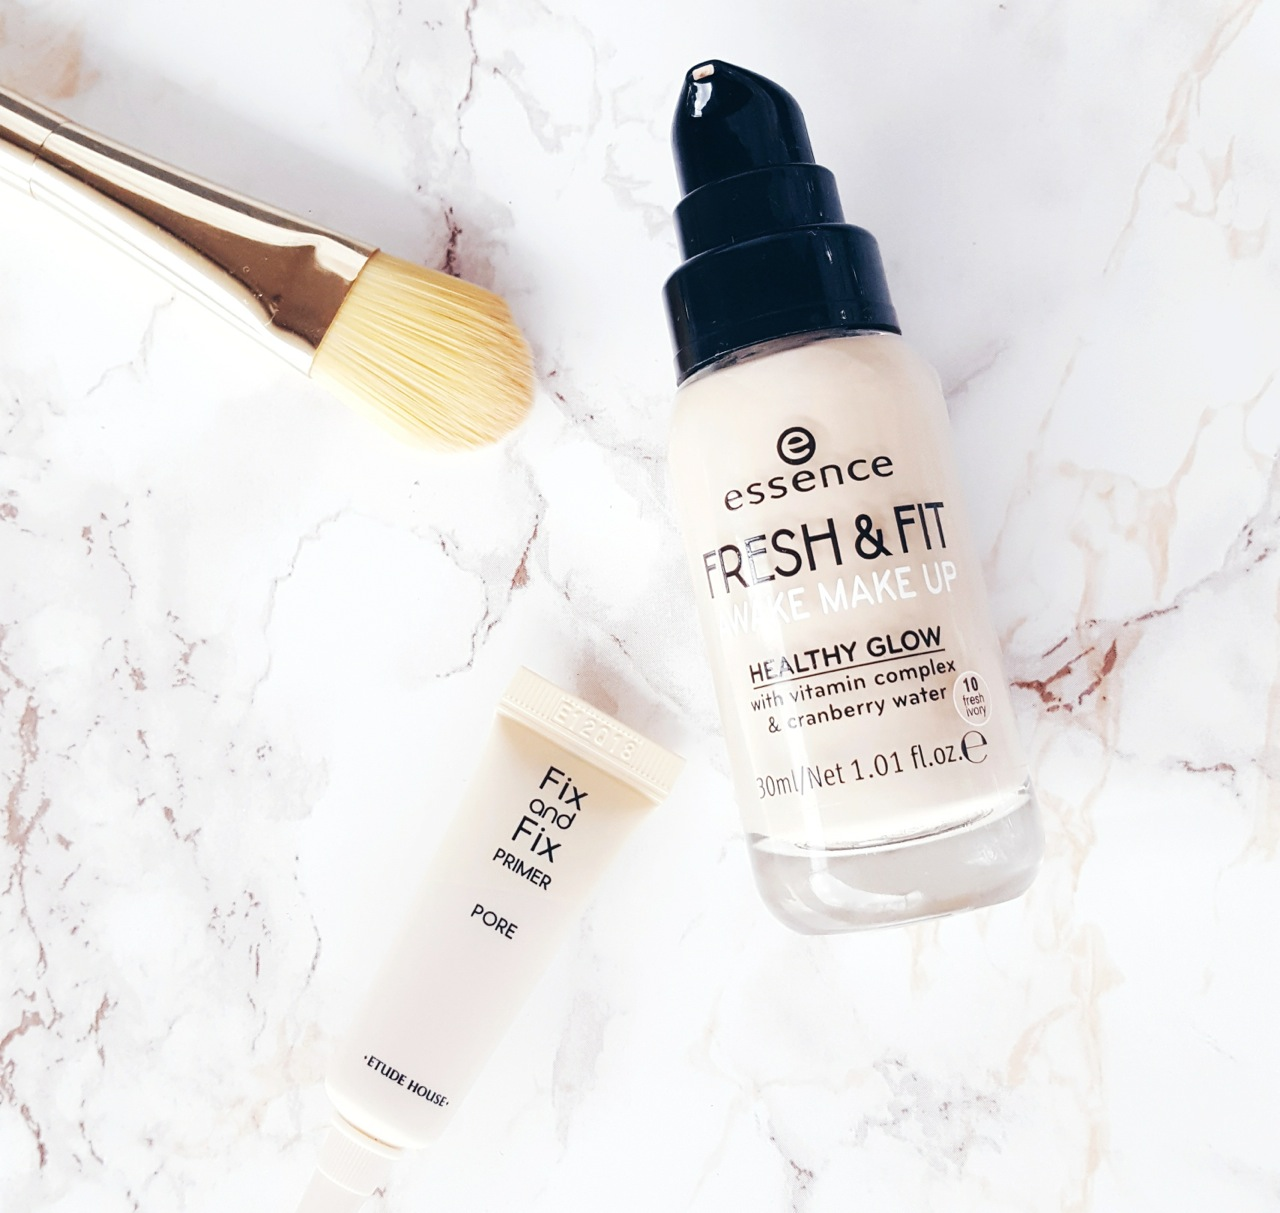 Essence Fresh & Fit Awake Makeup Foundation